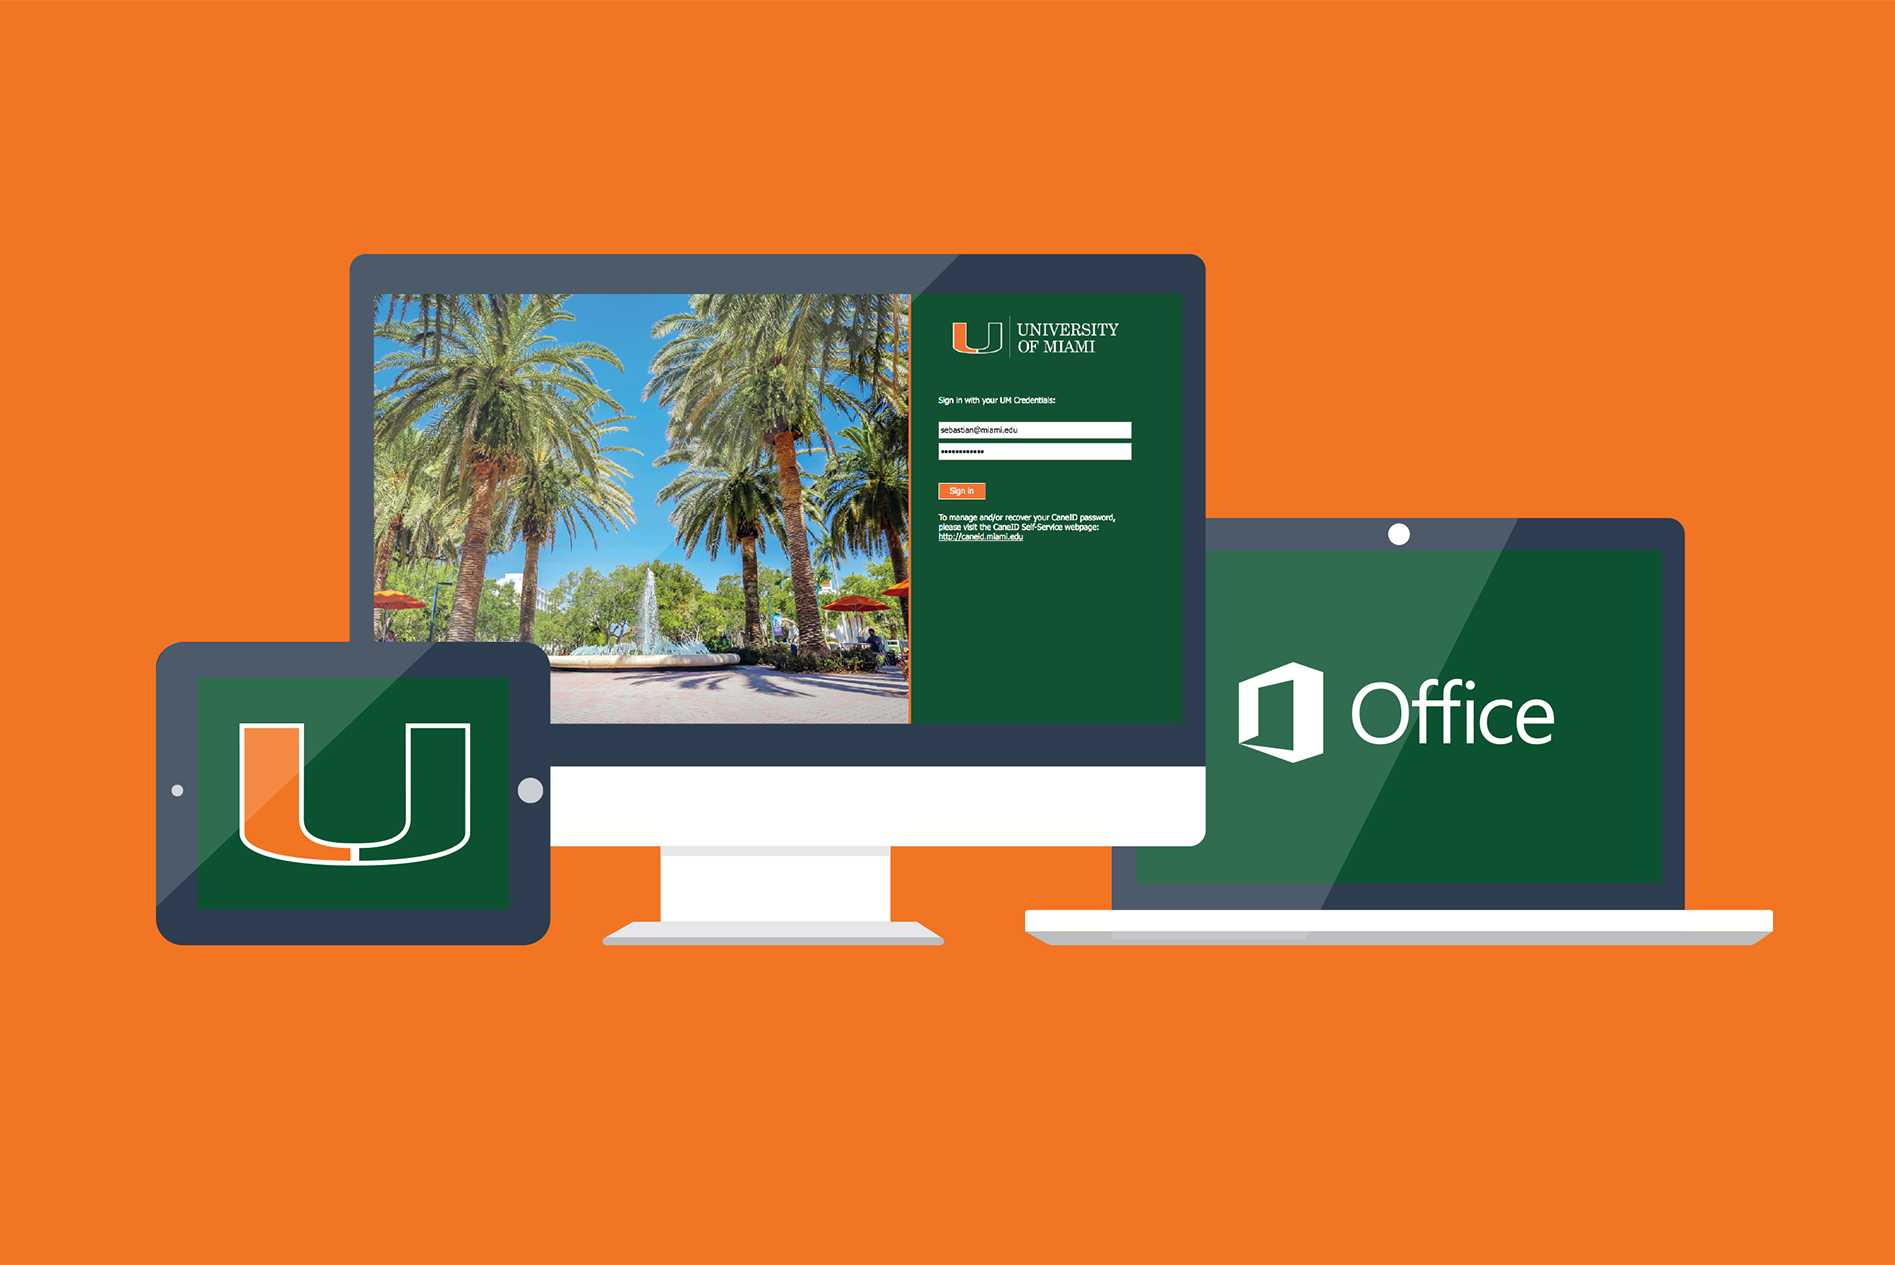 University Of Miami Information Technology within University Of Miami Powerpoint Template